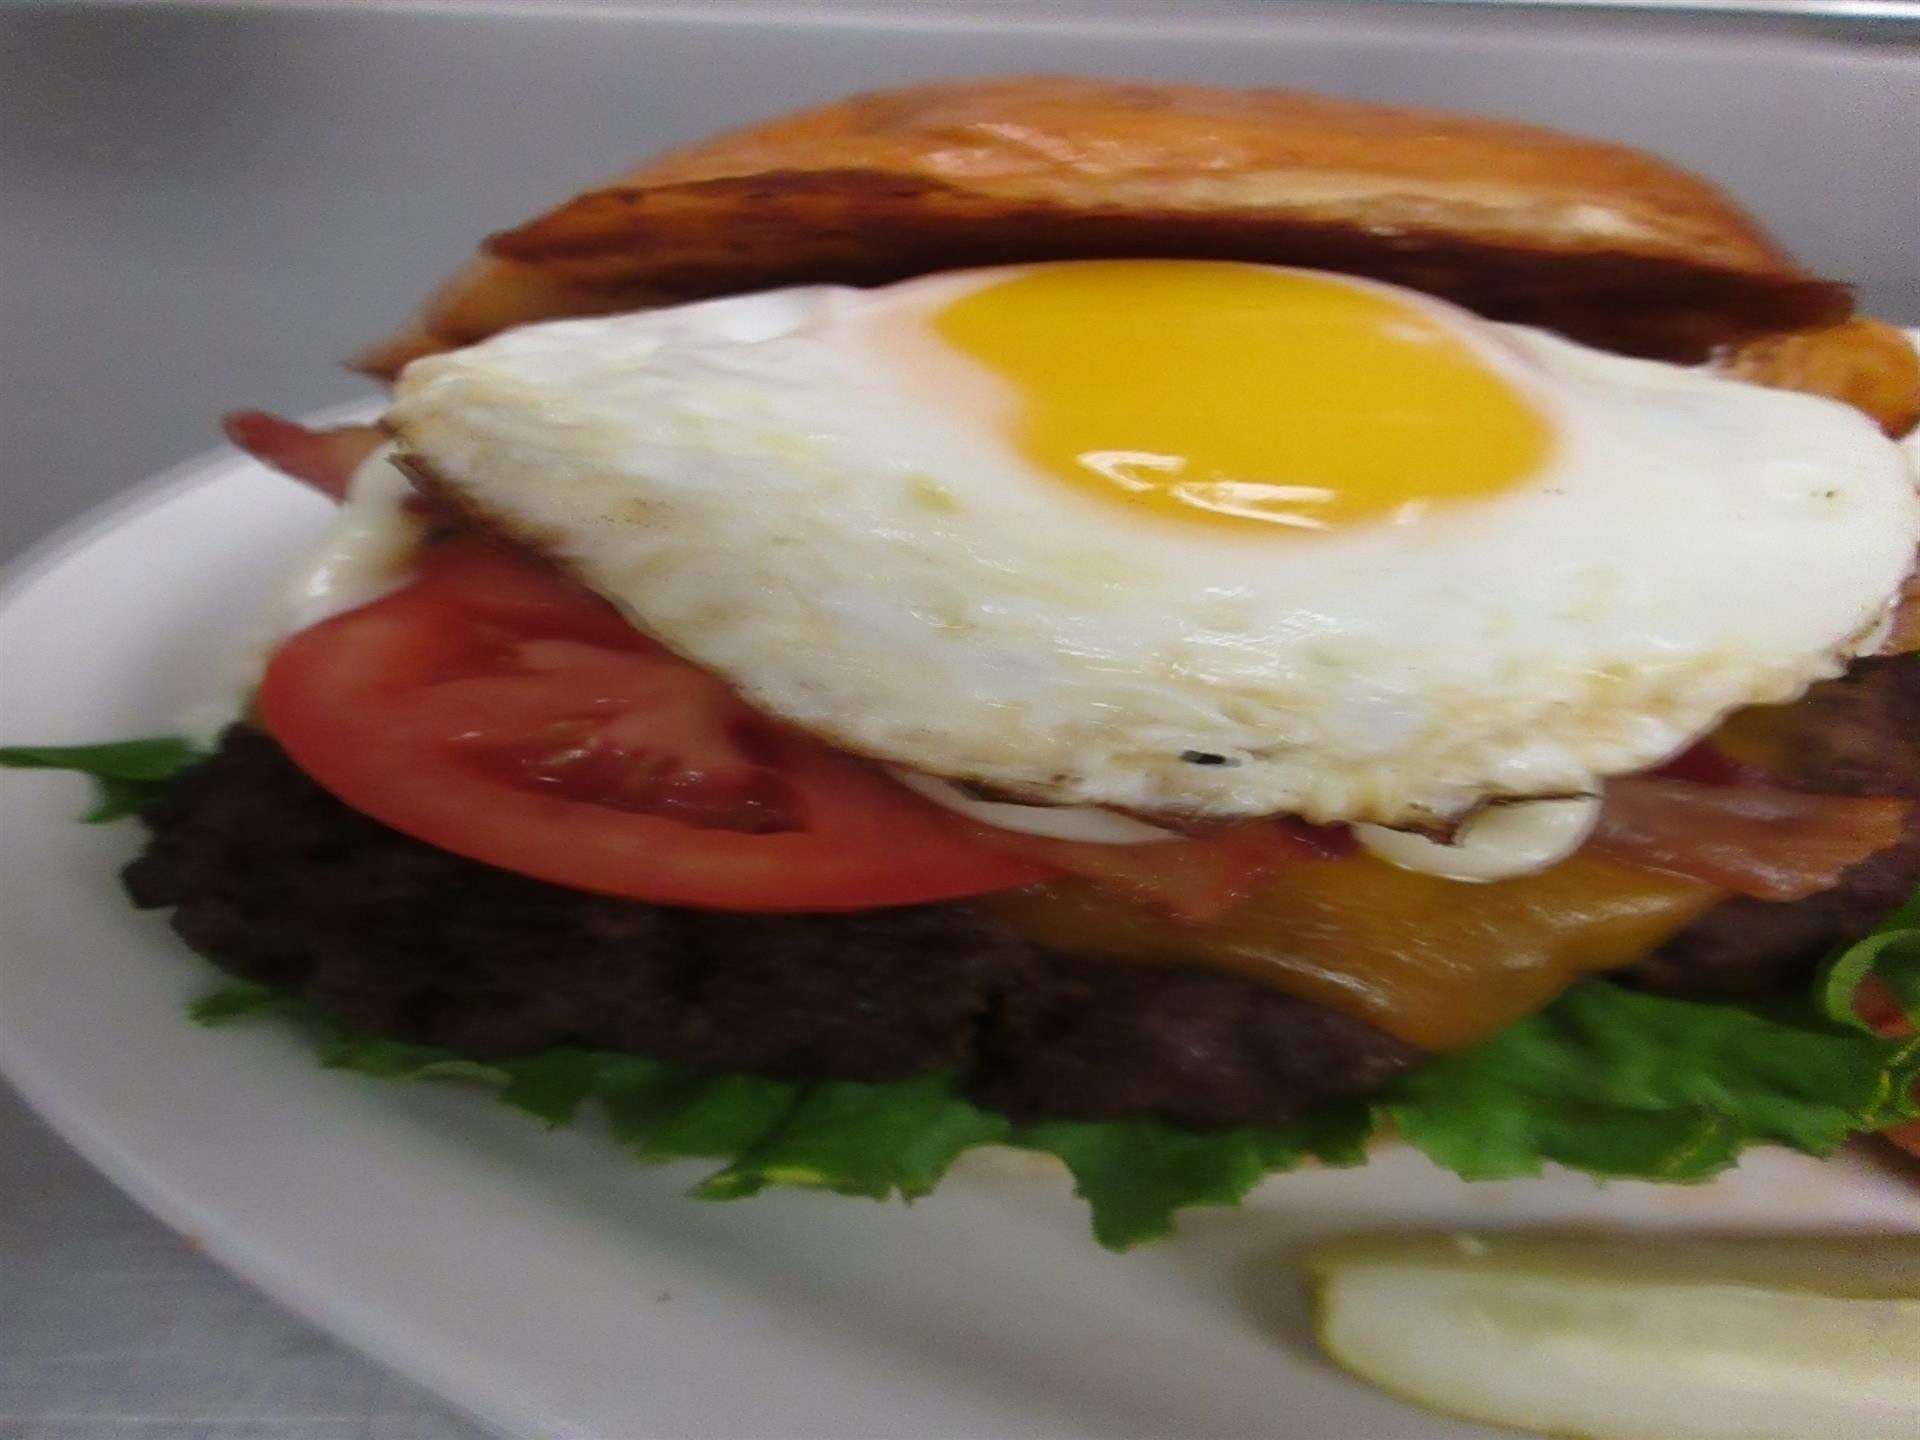 early riser burger. Cheddar Cheese, crispy bacon, lettuce,tomato, mayonnaise, topped with a fried egg.